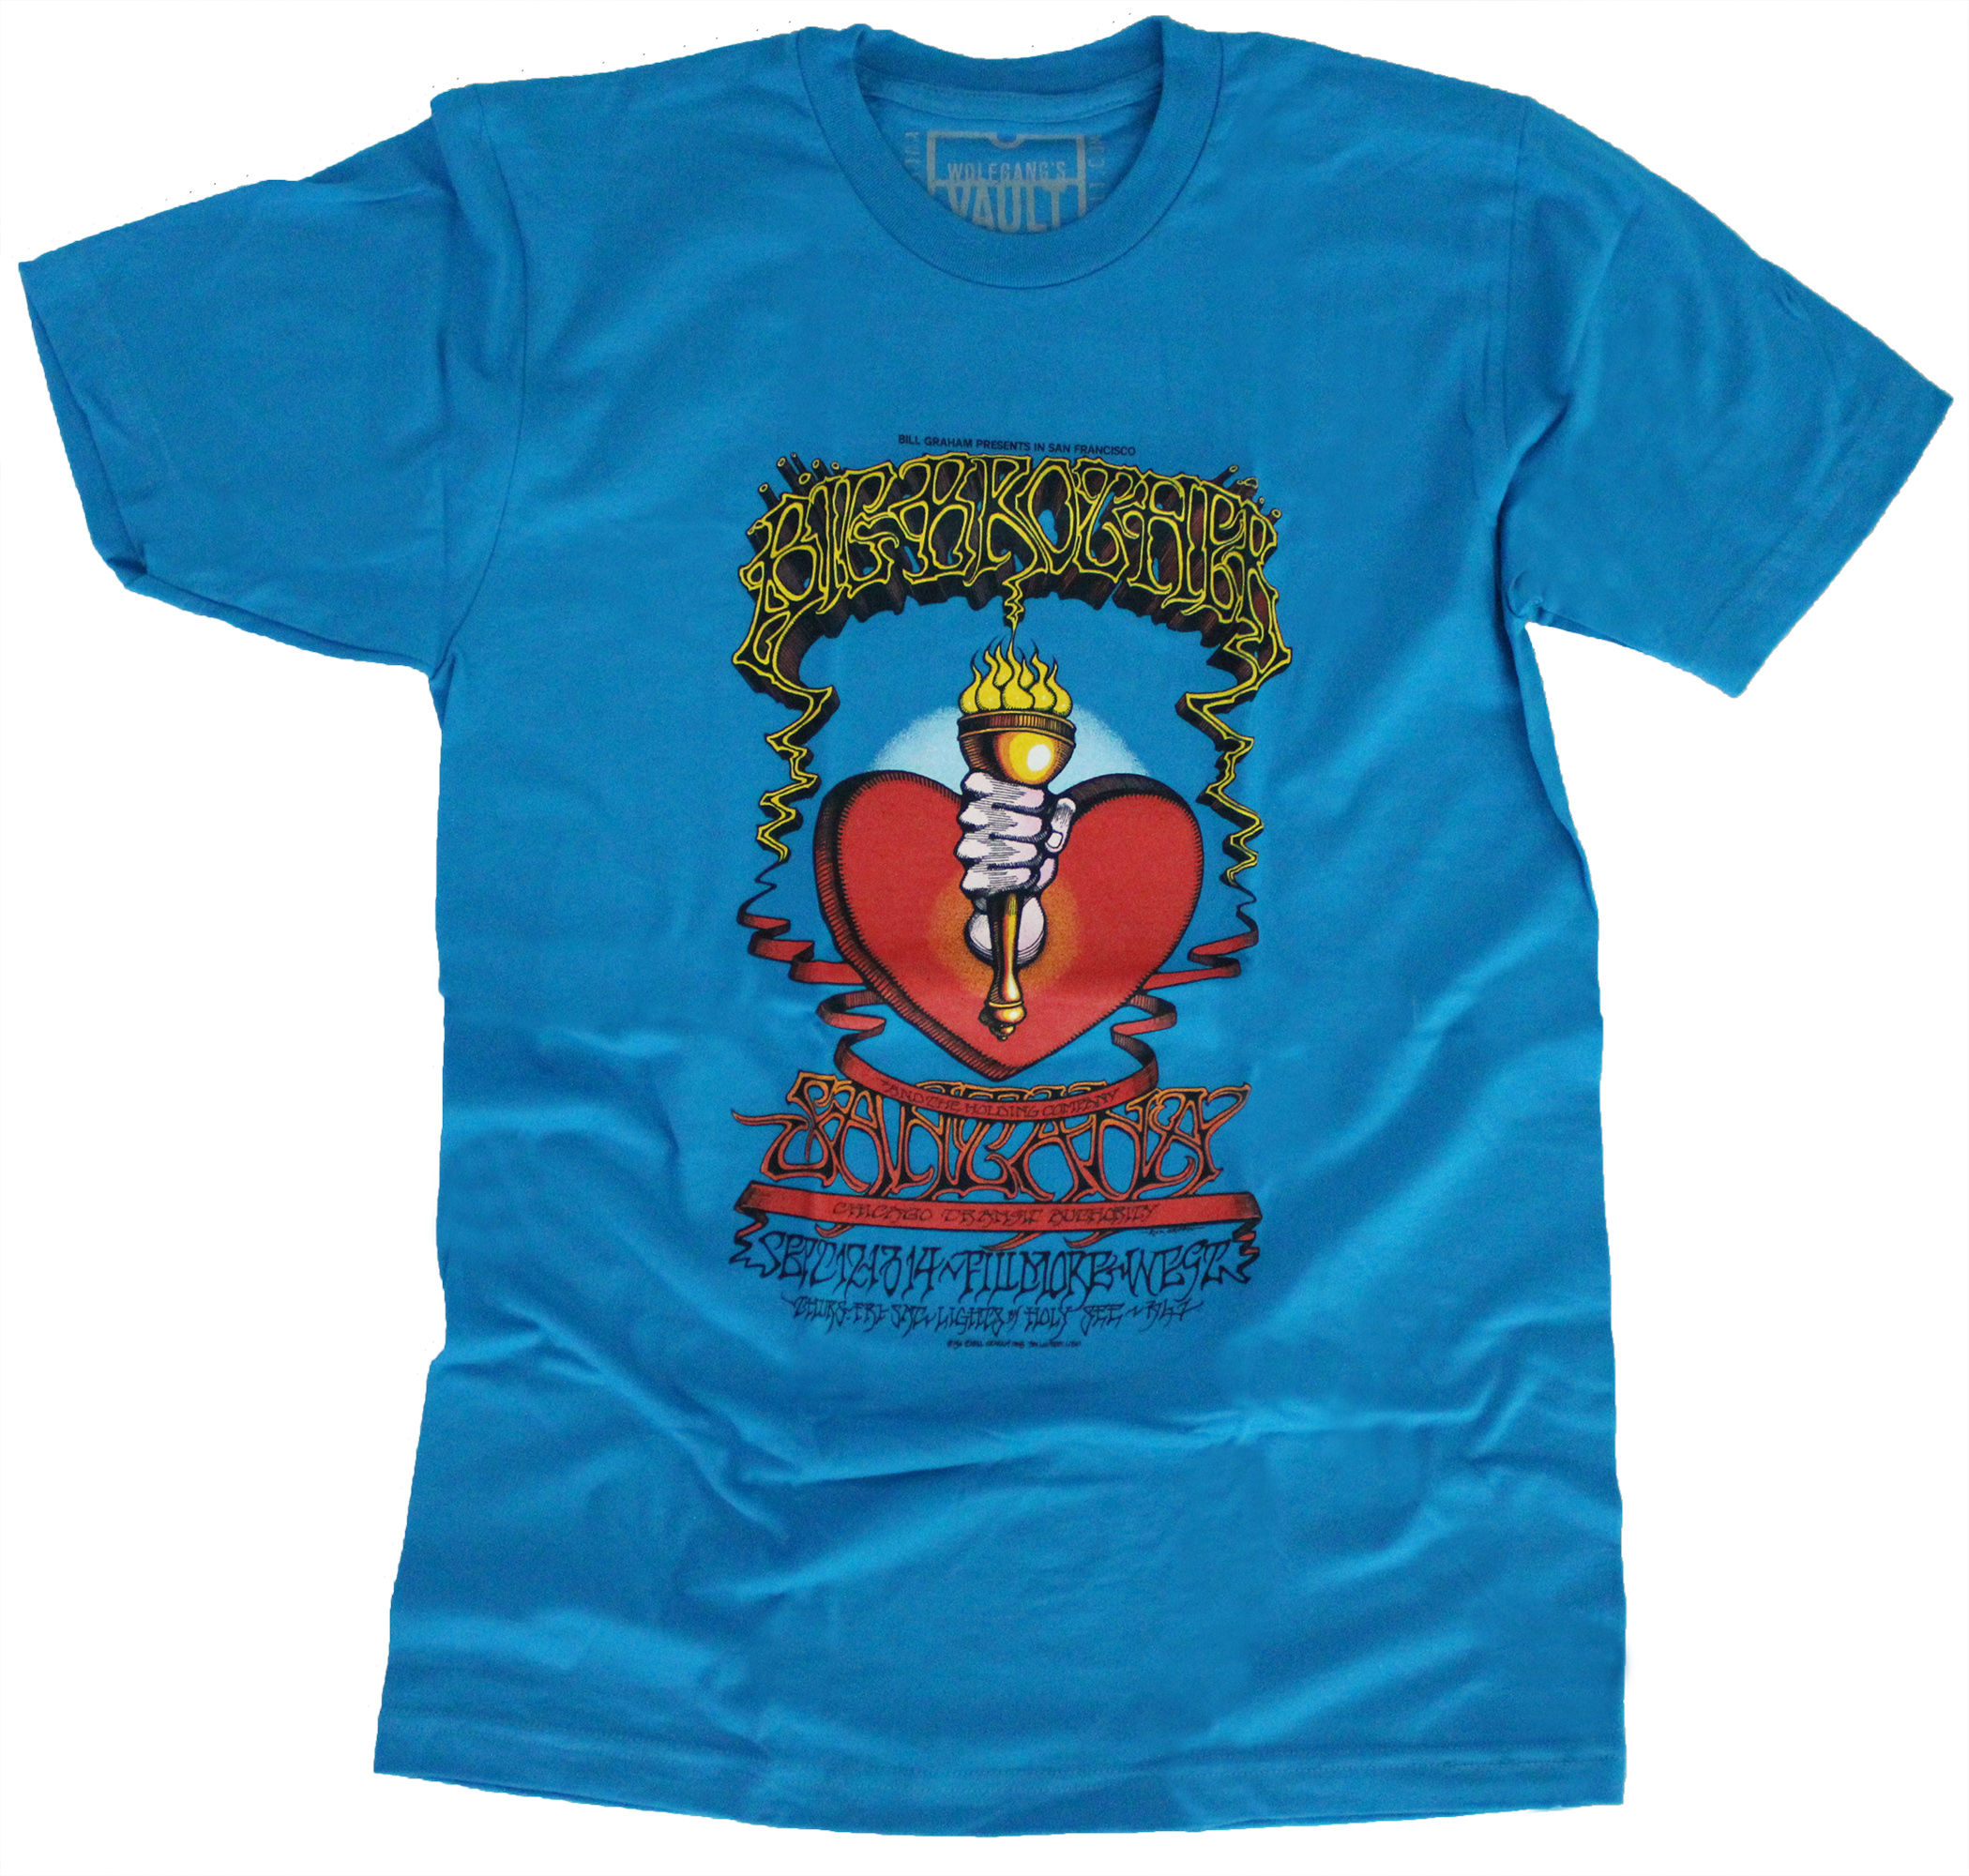 Free Big Brother and the Holding Company T-Shirt with Membership purchase